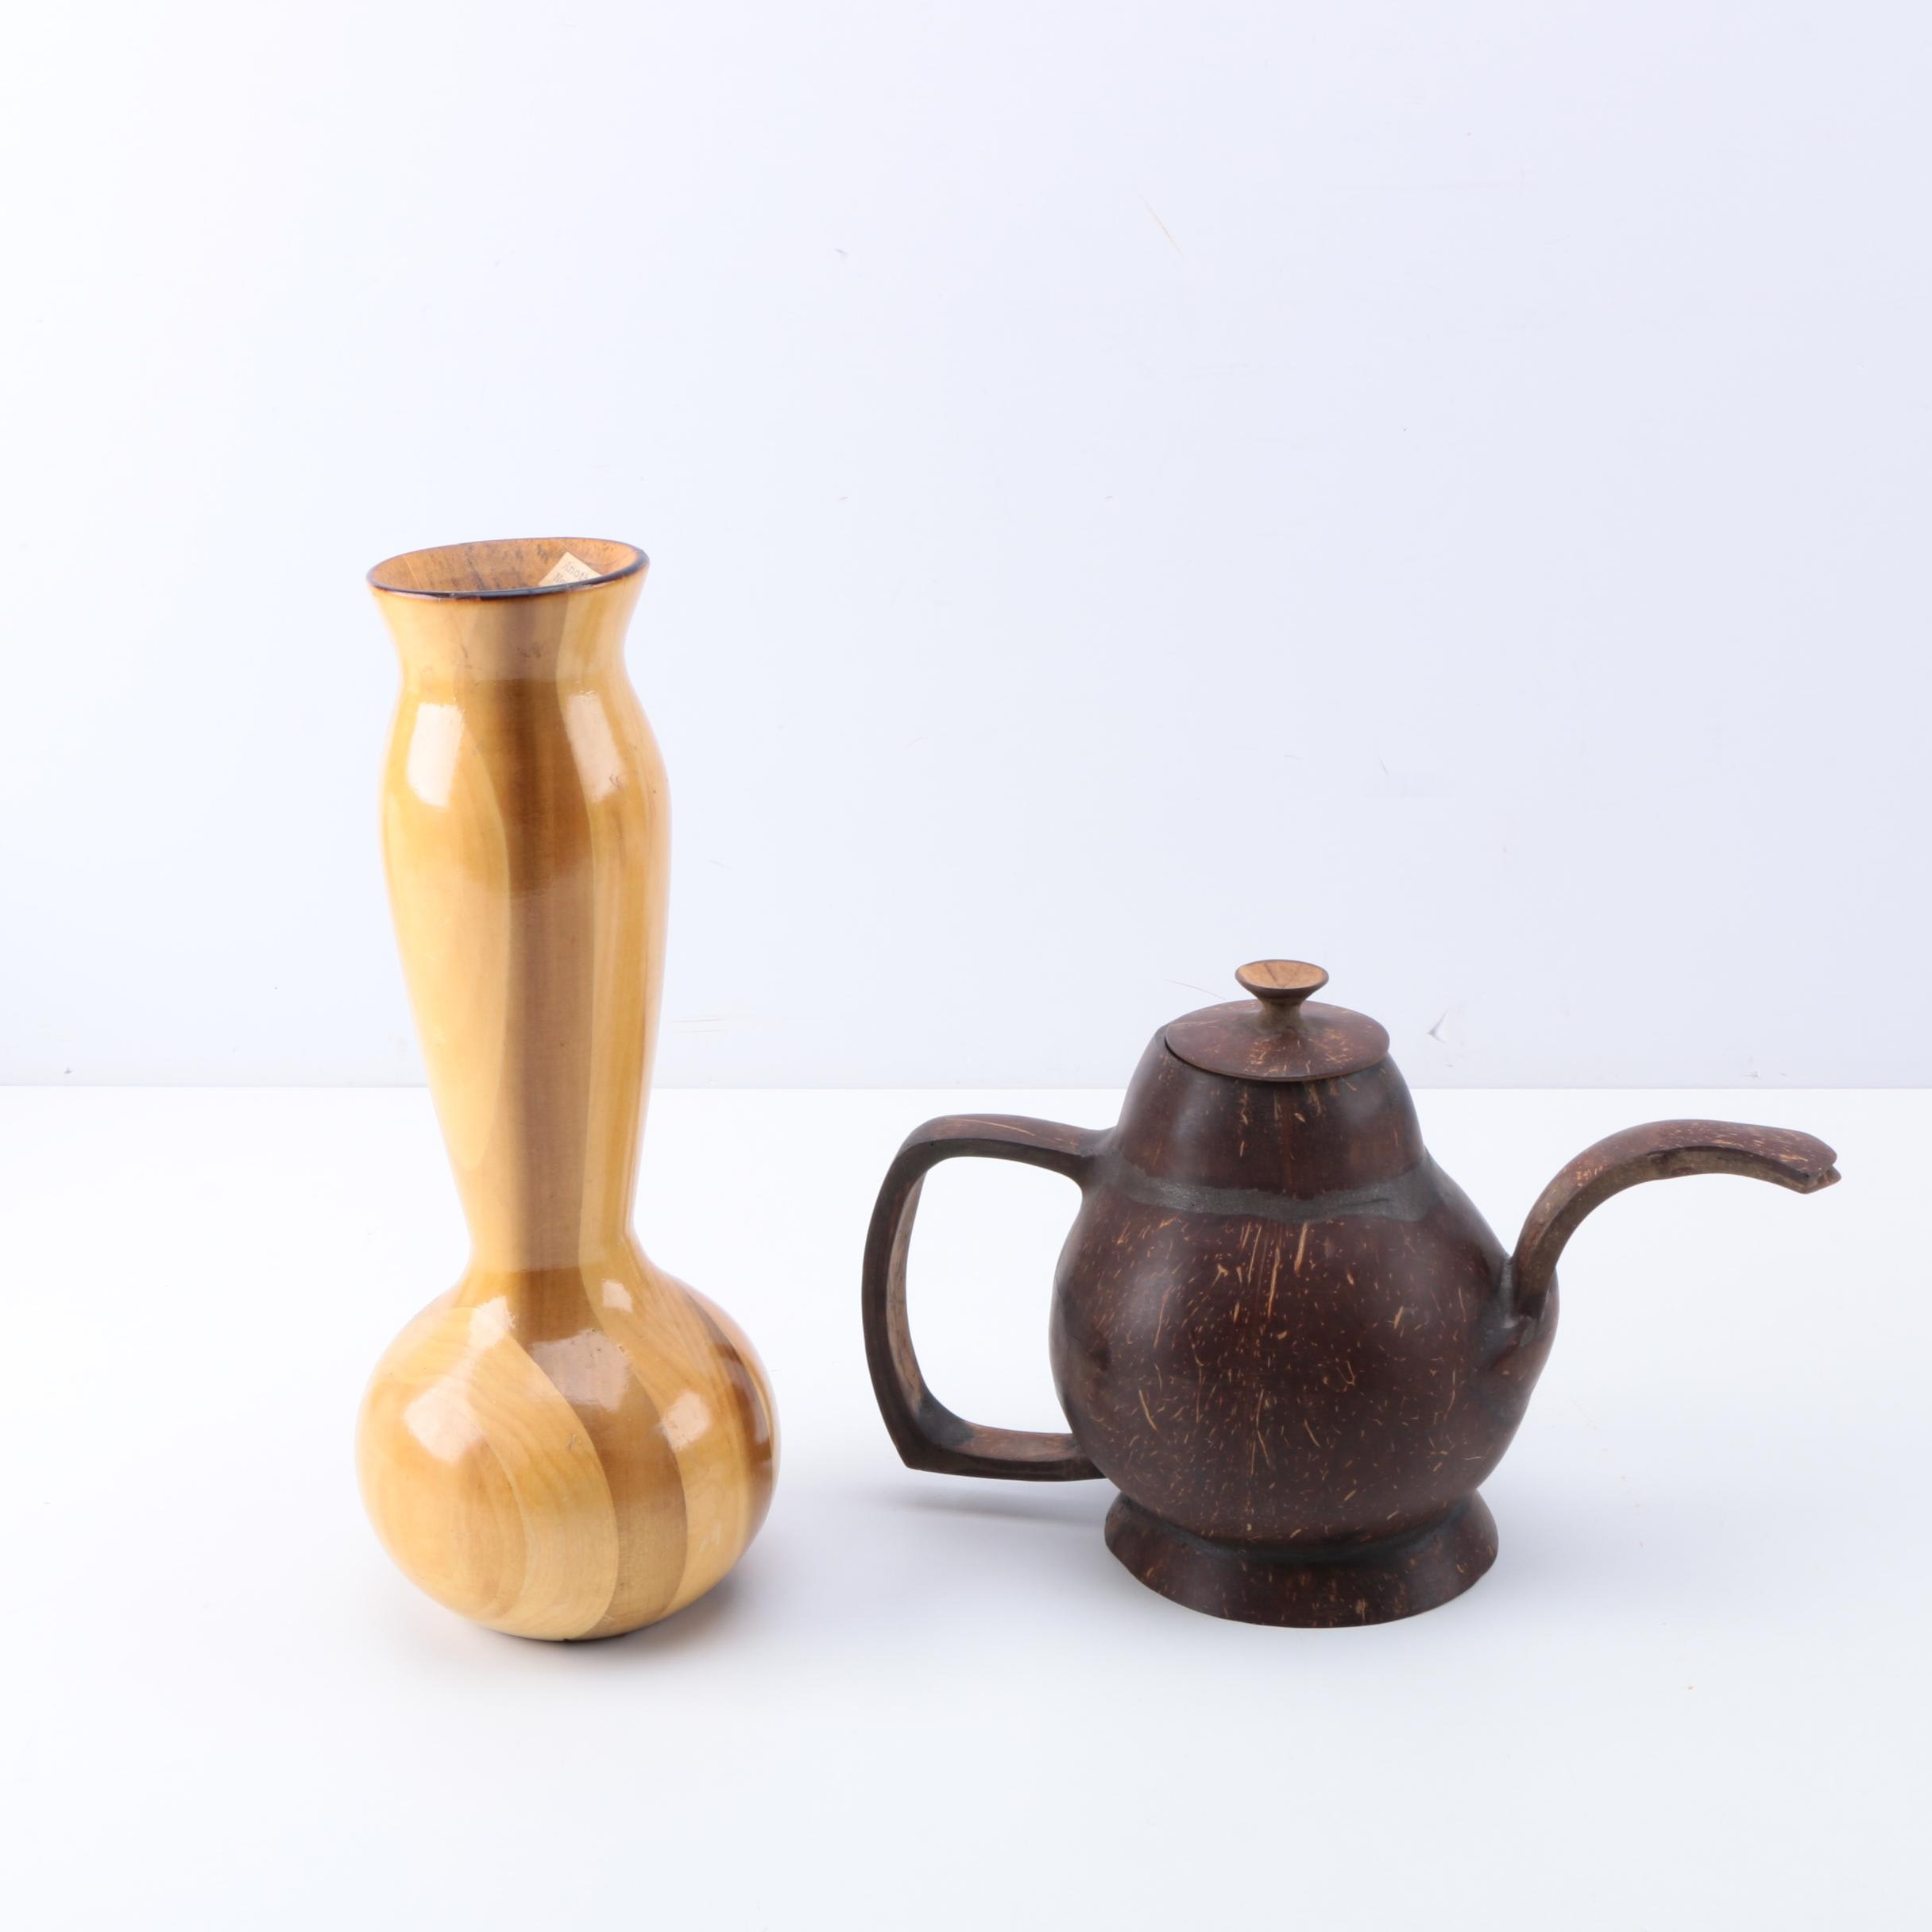 Decorative Carved Wooden Vase and Gourd Teapot